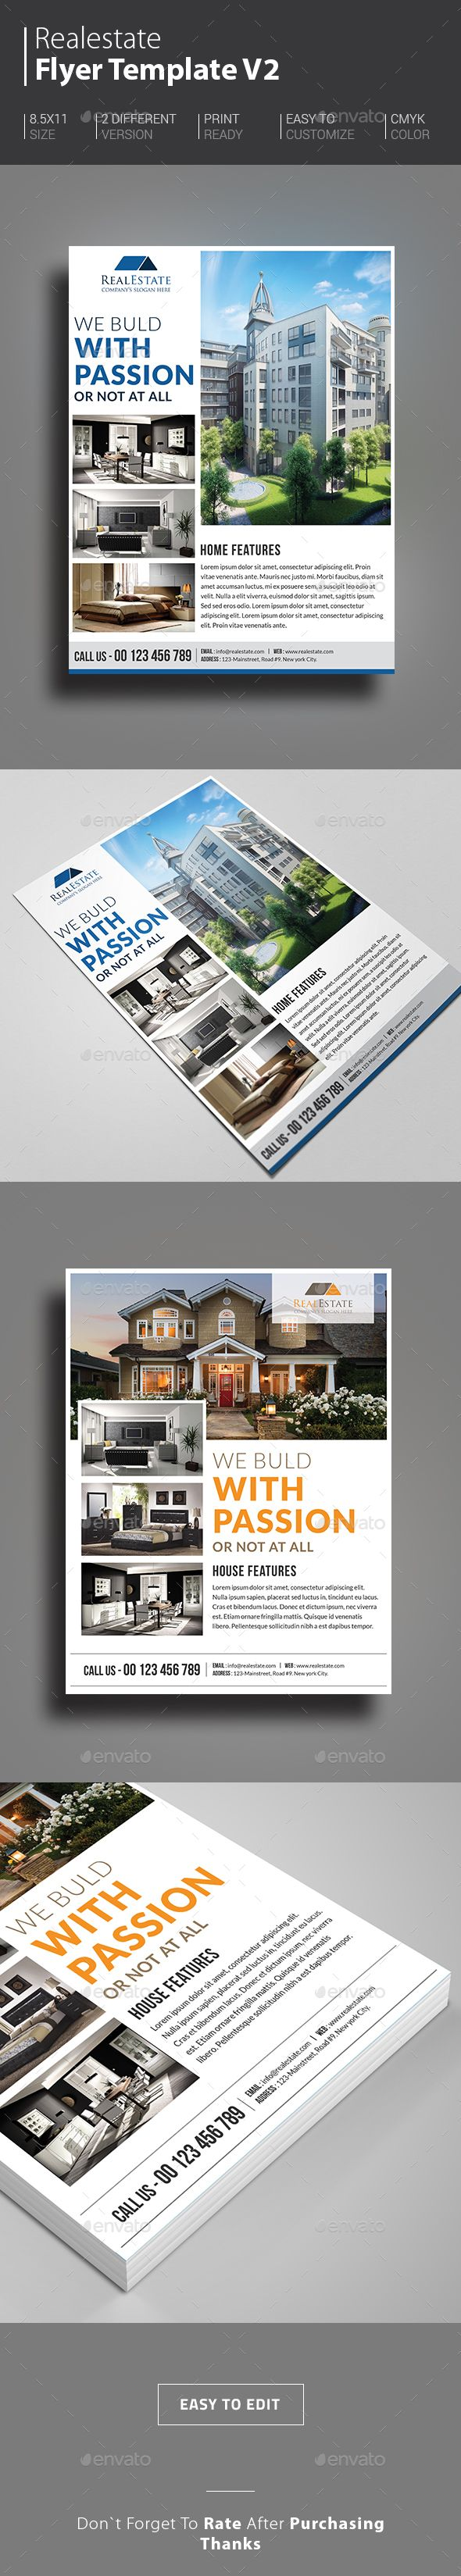 real estate flyer open house marketing and house real estate flyer template is a great addition to the real estate flyers design collection